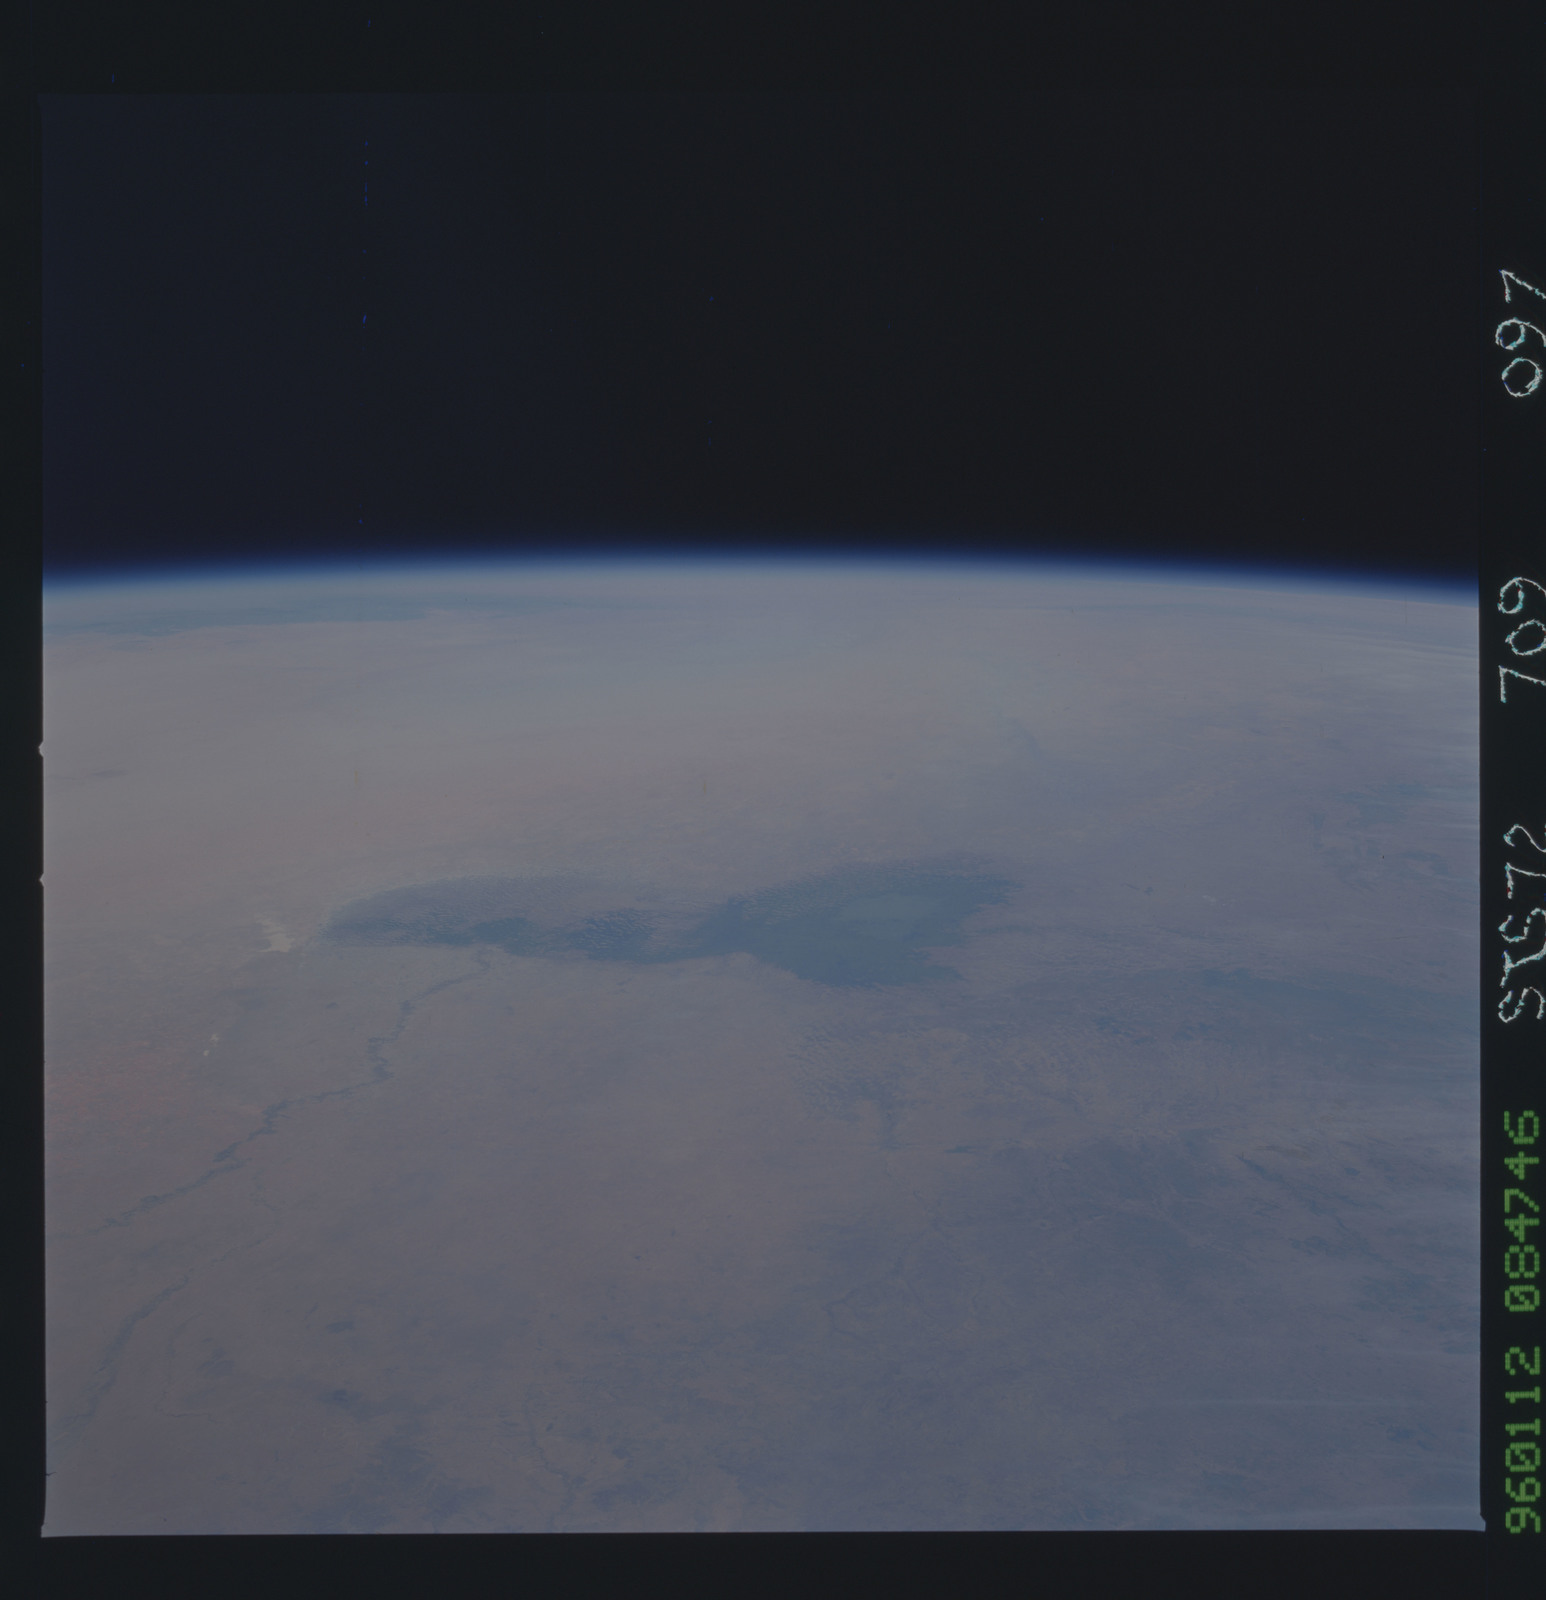 https://picryl com/media/sts069-709-011-sts-069-earth